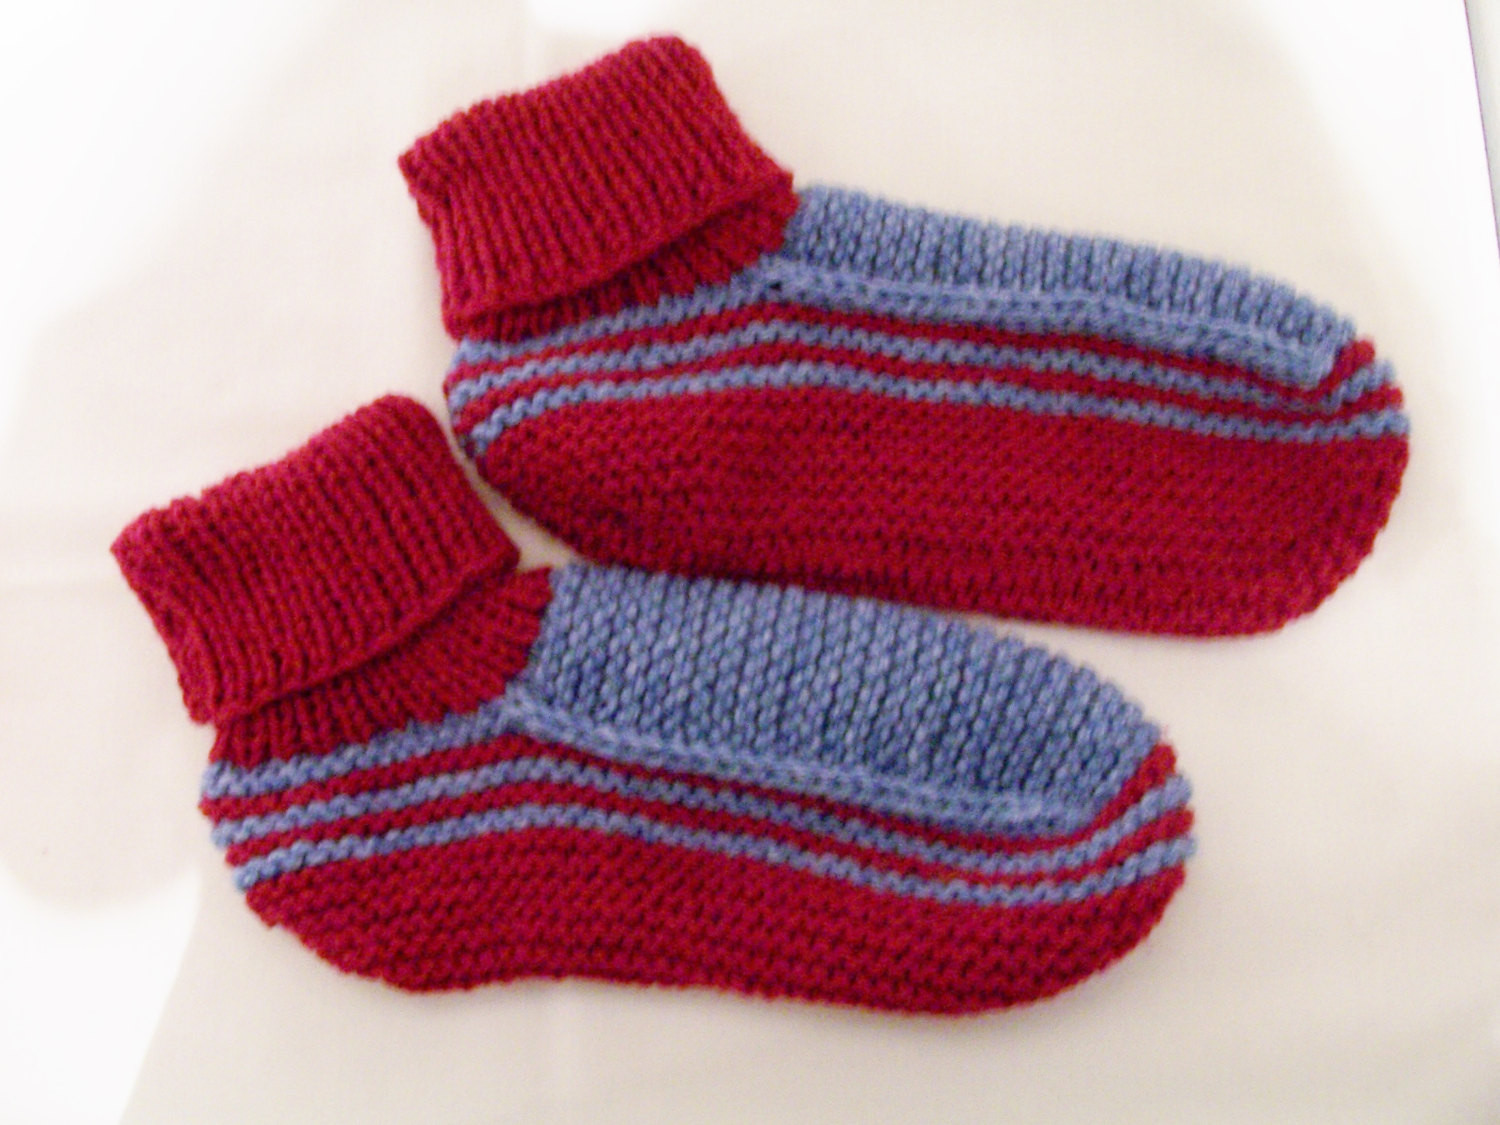 New Adult Knitted Acrylic Yarn sock Slippers In Burgundy and Blue Knitted Booties for Adults Of Delightful 47 Images Knitted Booties for Adults